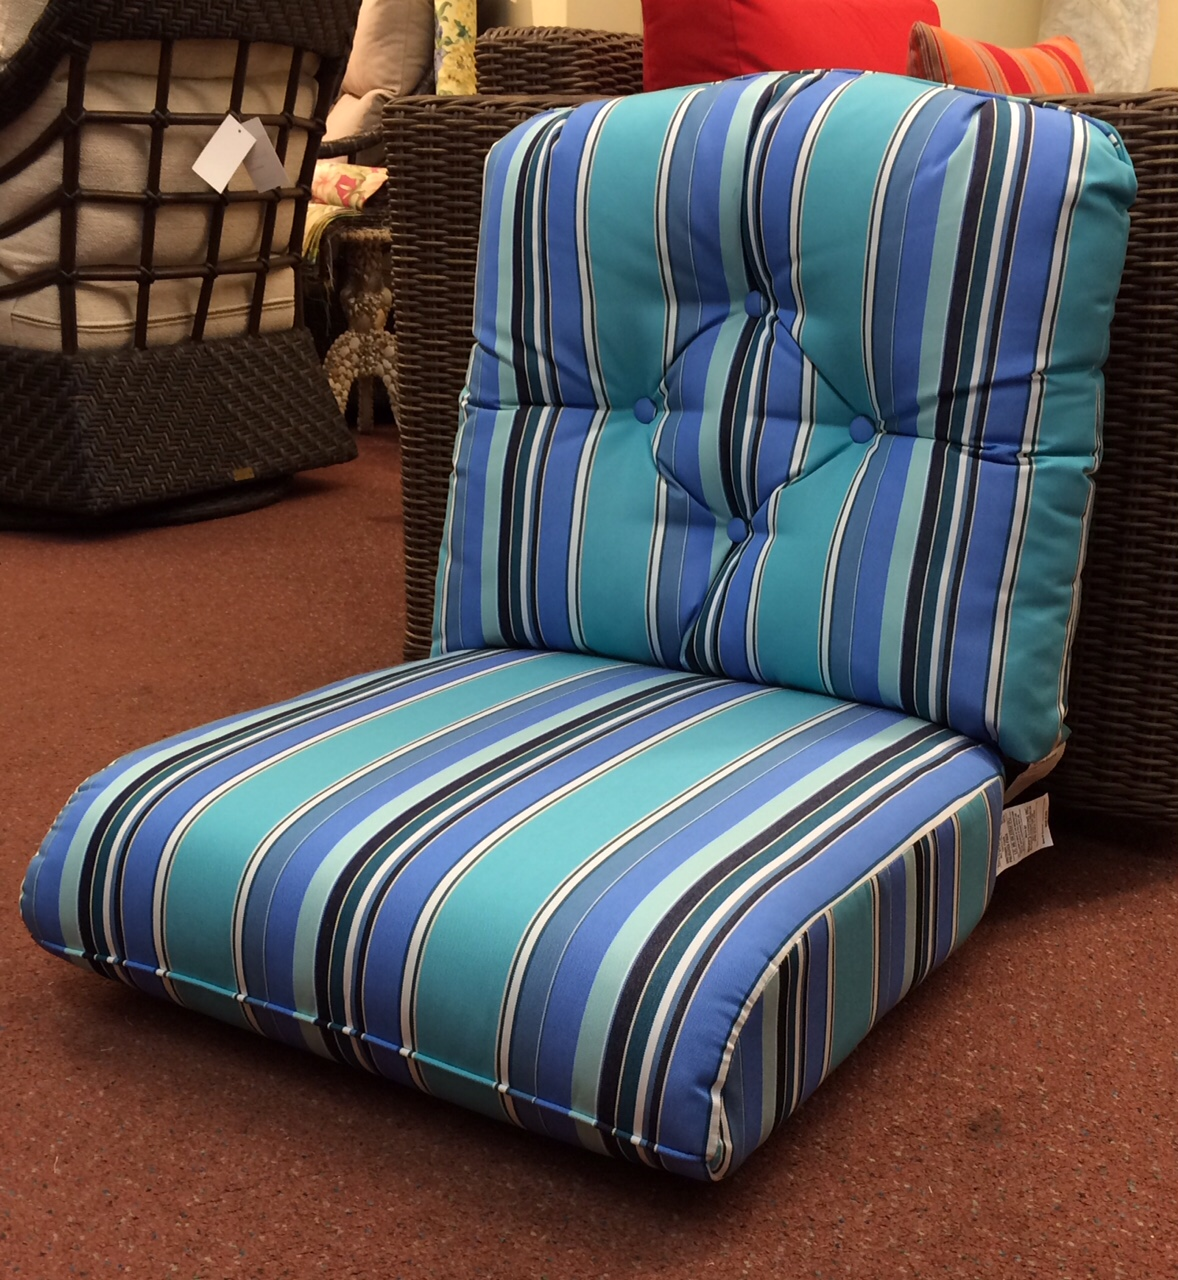 Patio Chair Cushions Cheap 22 Wonderful Patio Furniture Cushions Clearance